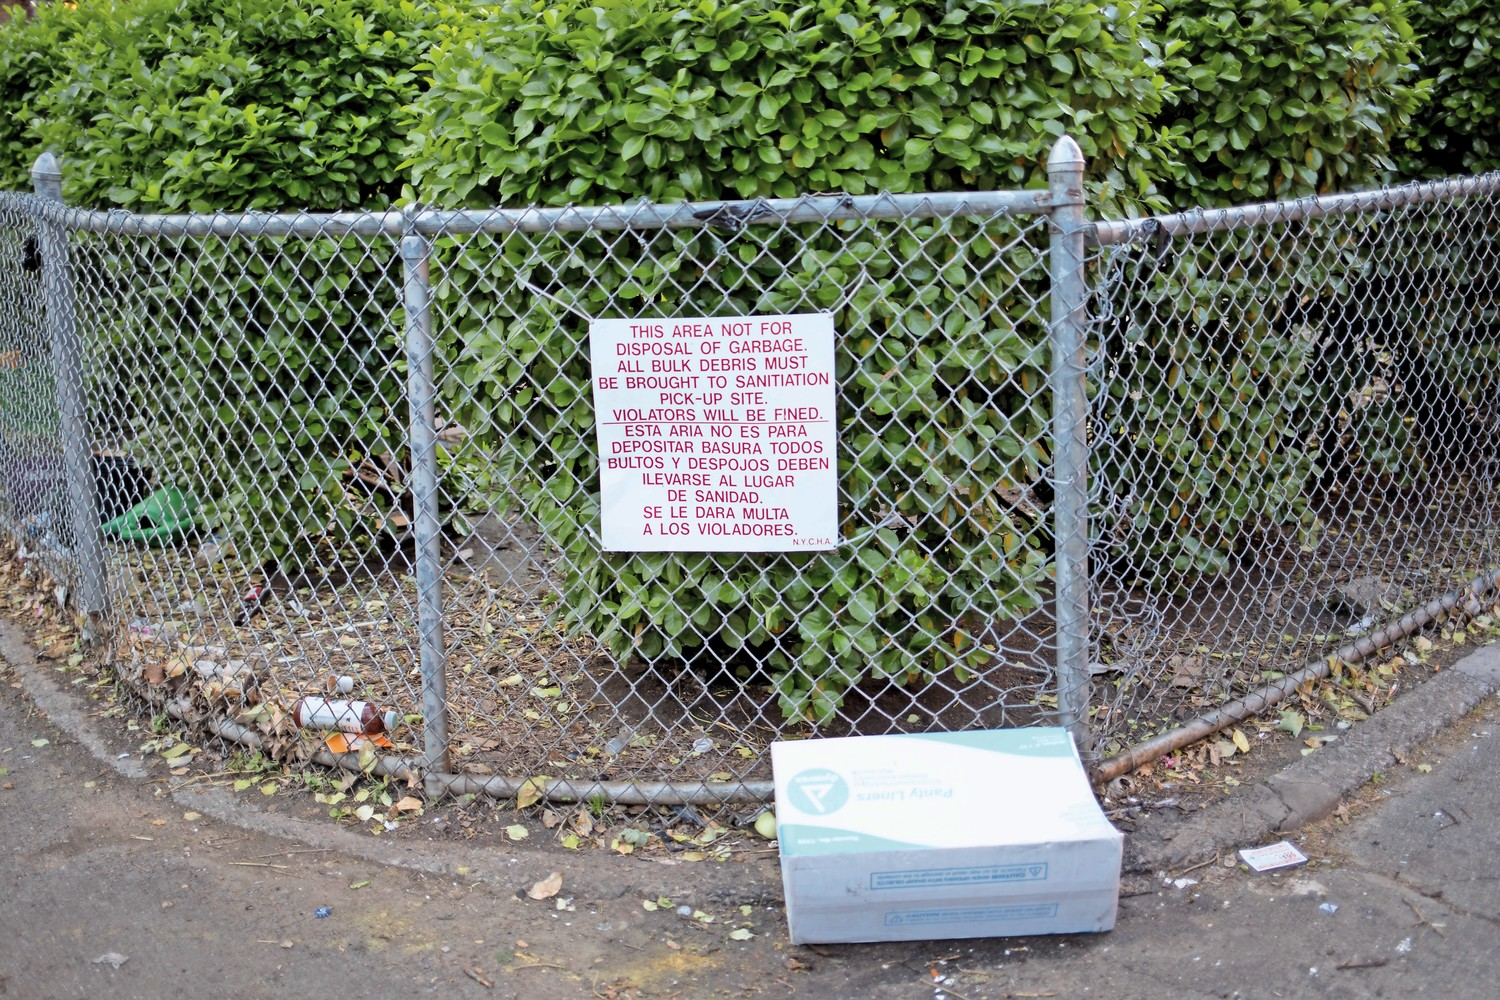 Garbage rests next to a sign notifying tenants that garbage is not supposed to be dumped in that area. On May 26, Tony Edwards, the president of the Marble Hill tenants association, will lead a neighborhood clean-up.